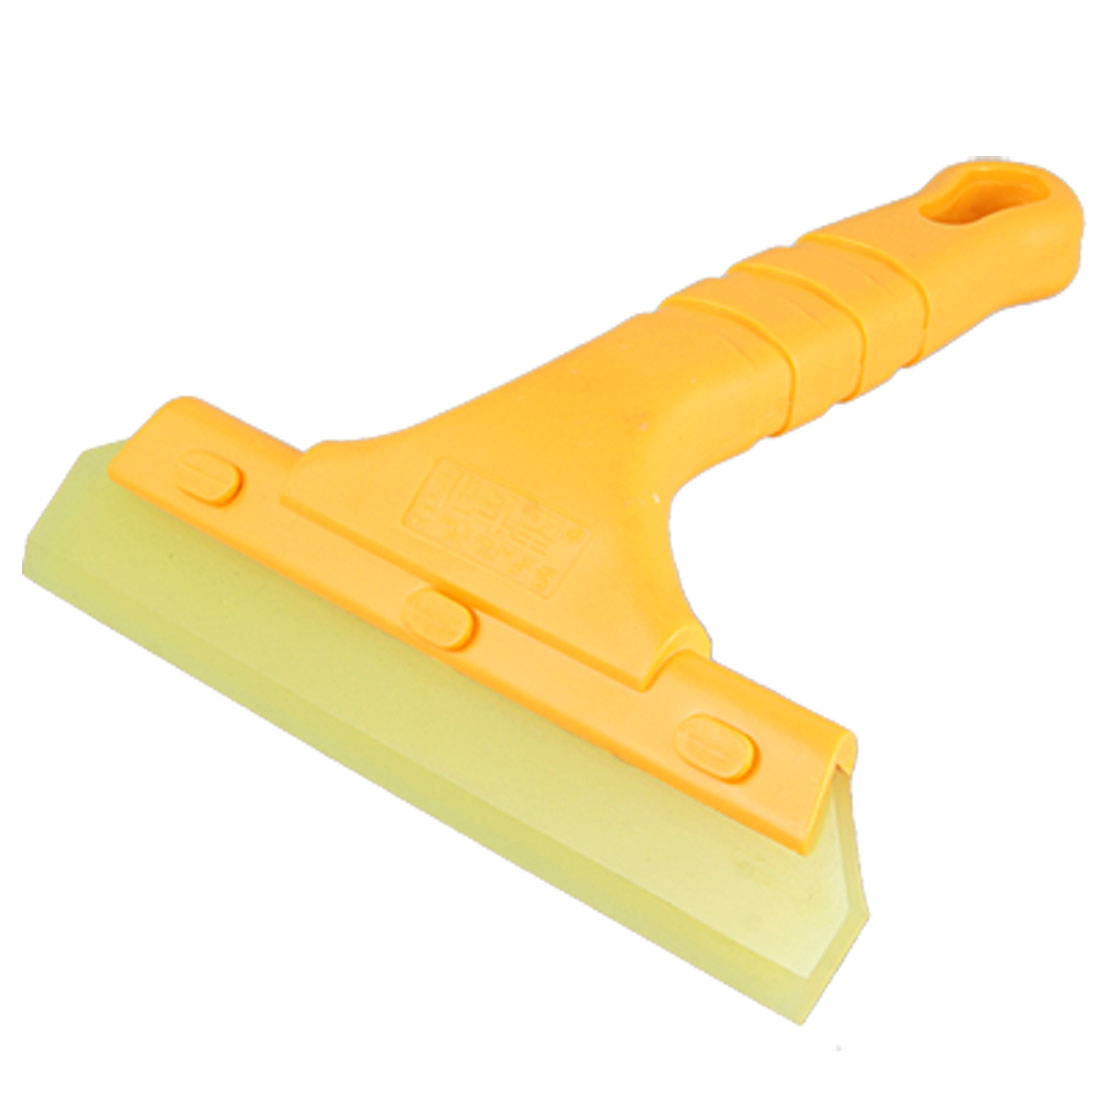 Yellow Nonslip Handle Film Sticker Cleaning Scraper for Car Auto